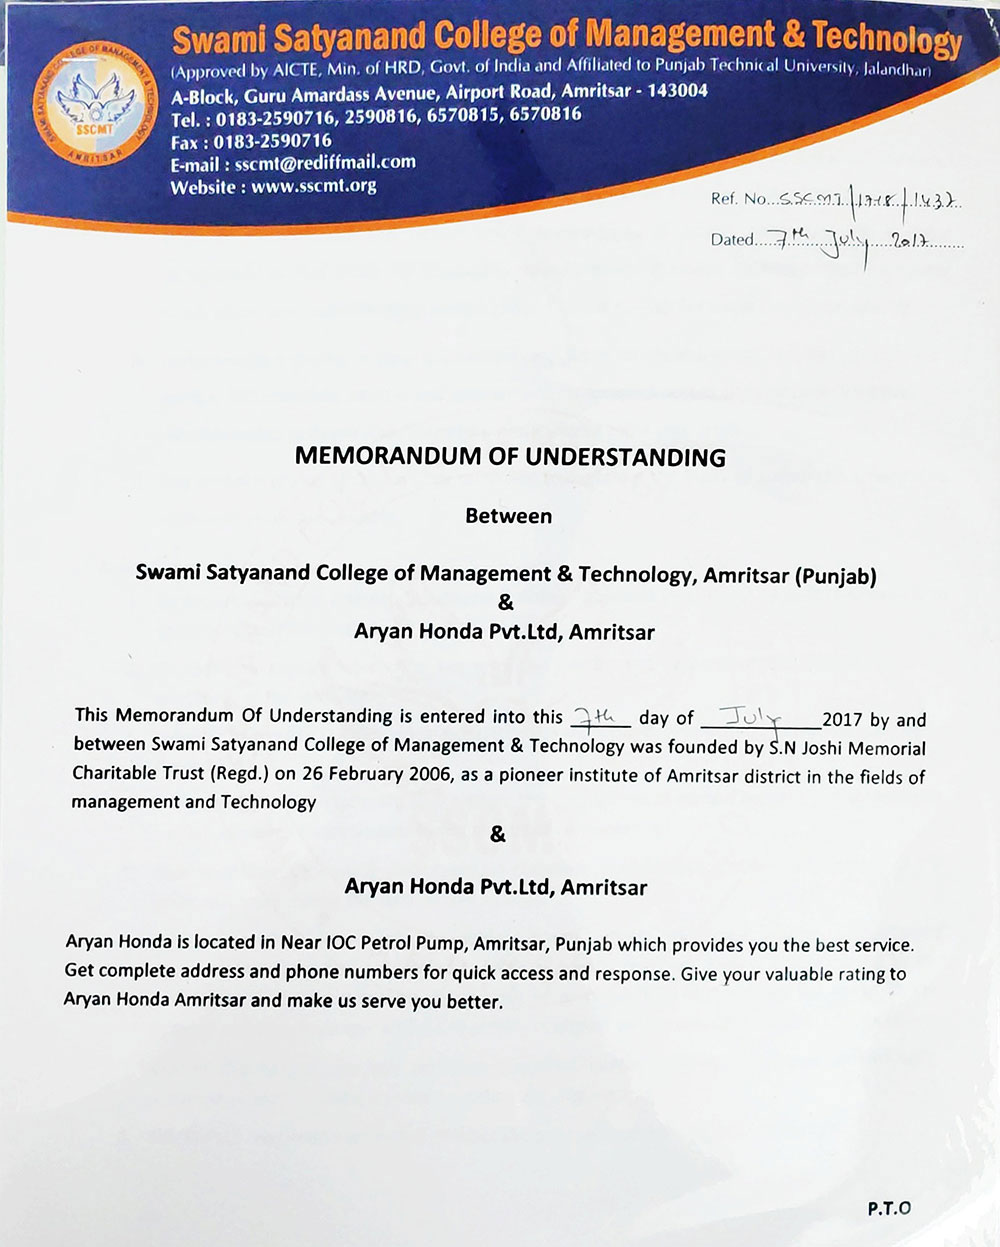 MOU/ Tie ups - Swami Satyanand College of Management and